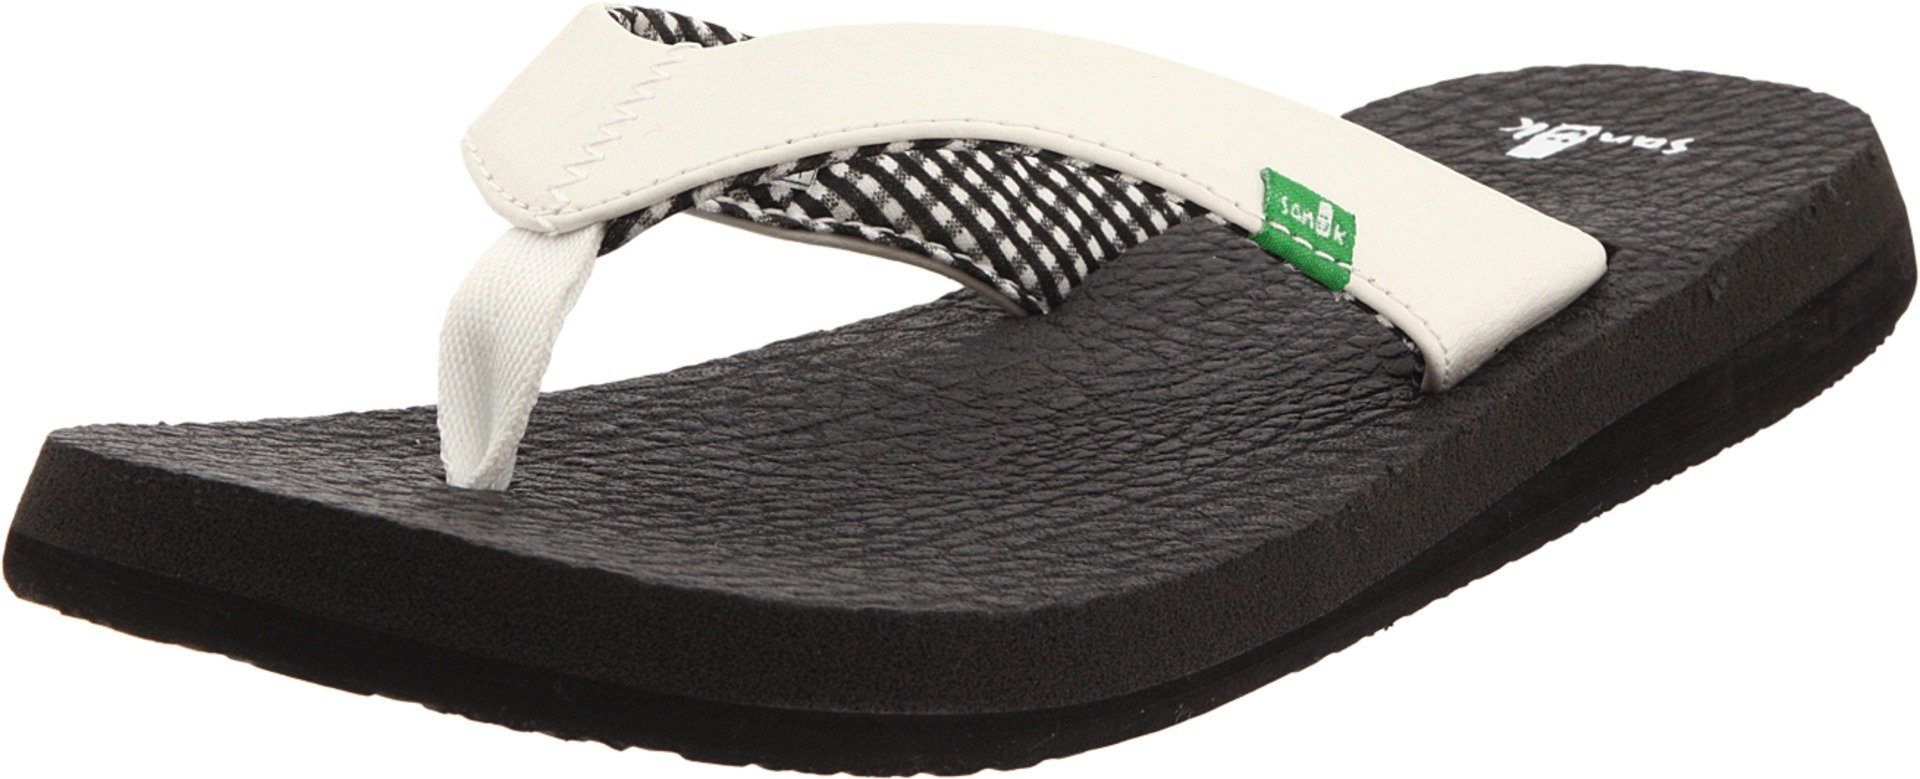 Sanuk Womens Yoga Mat Sandal/Flip Flops/Slipper Footwear, White, Size 10 by Sanuk